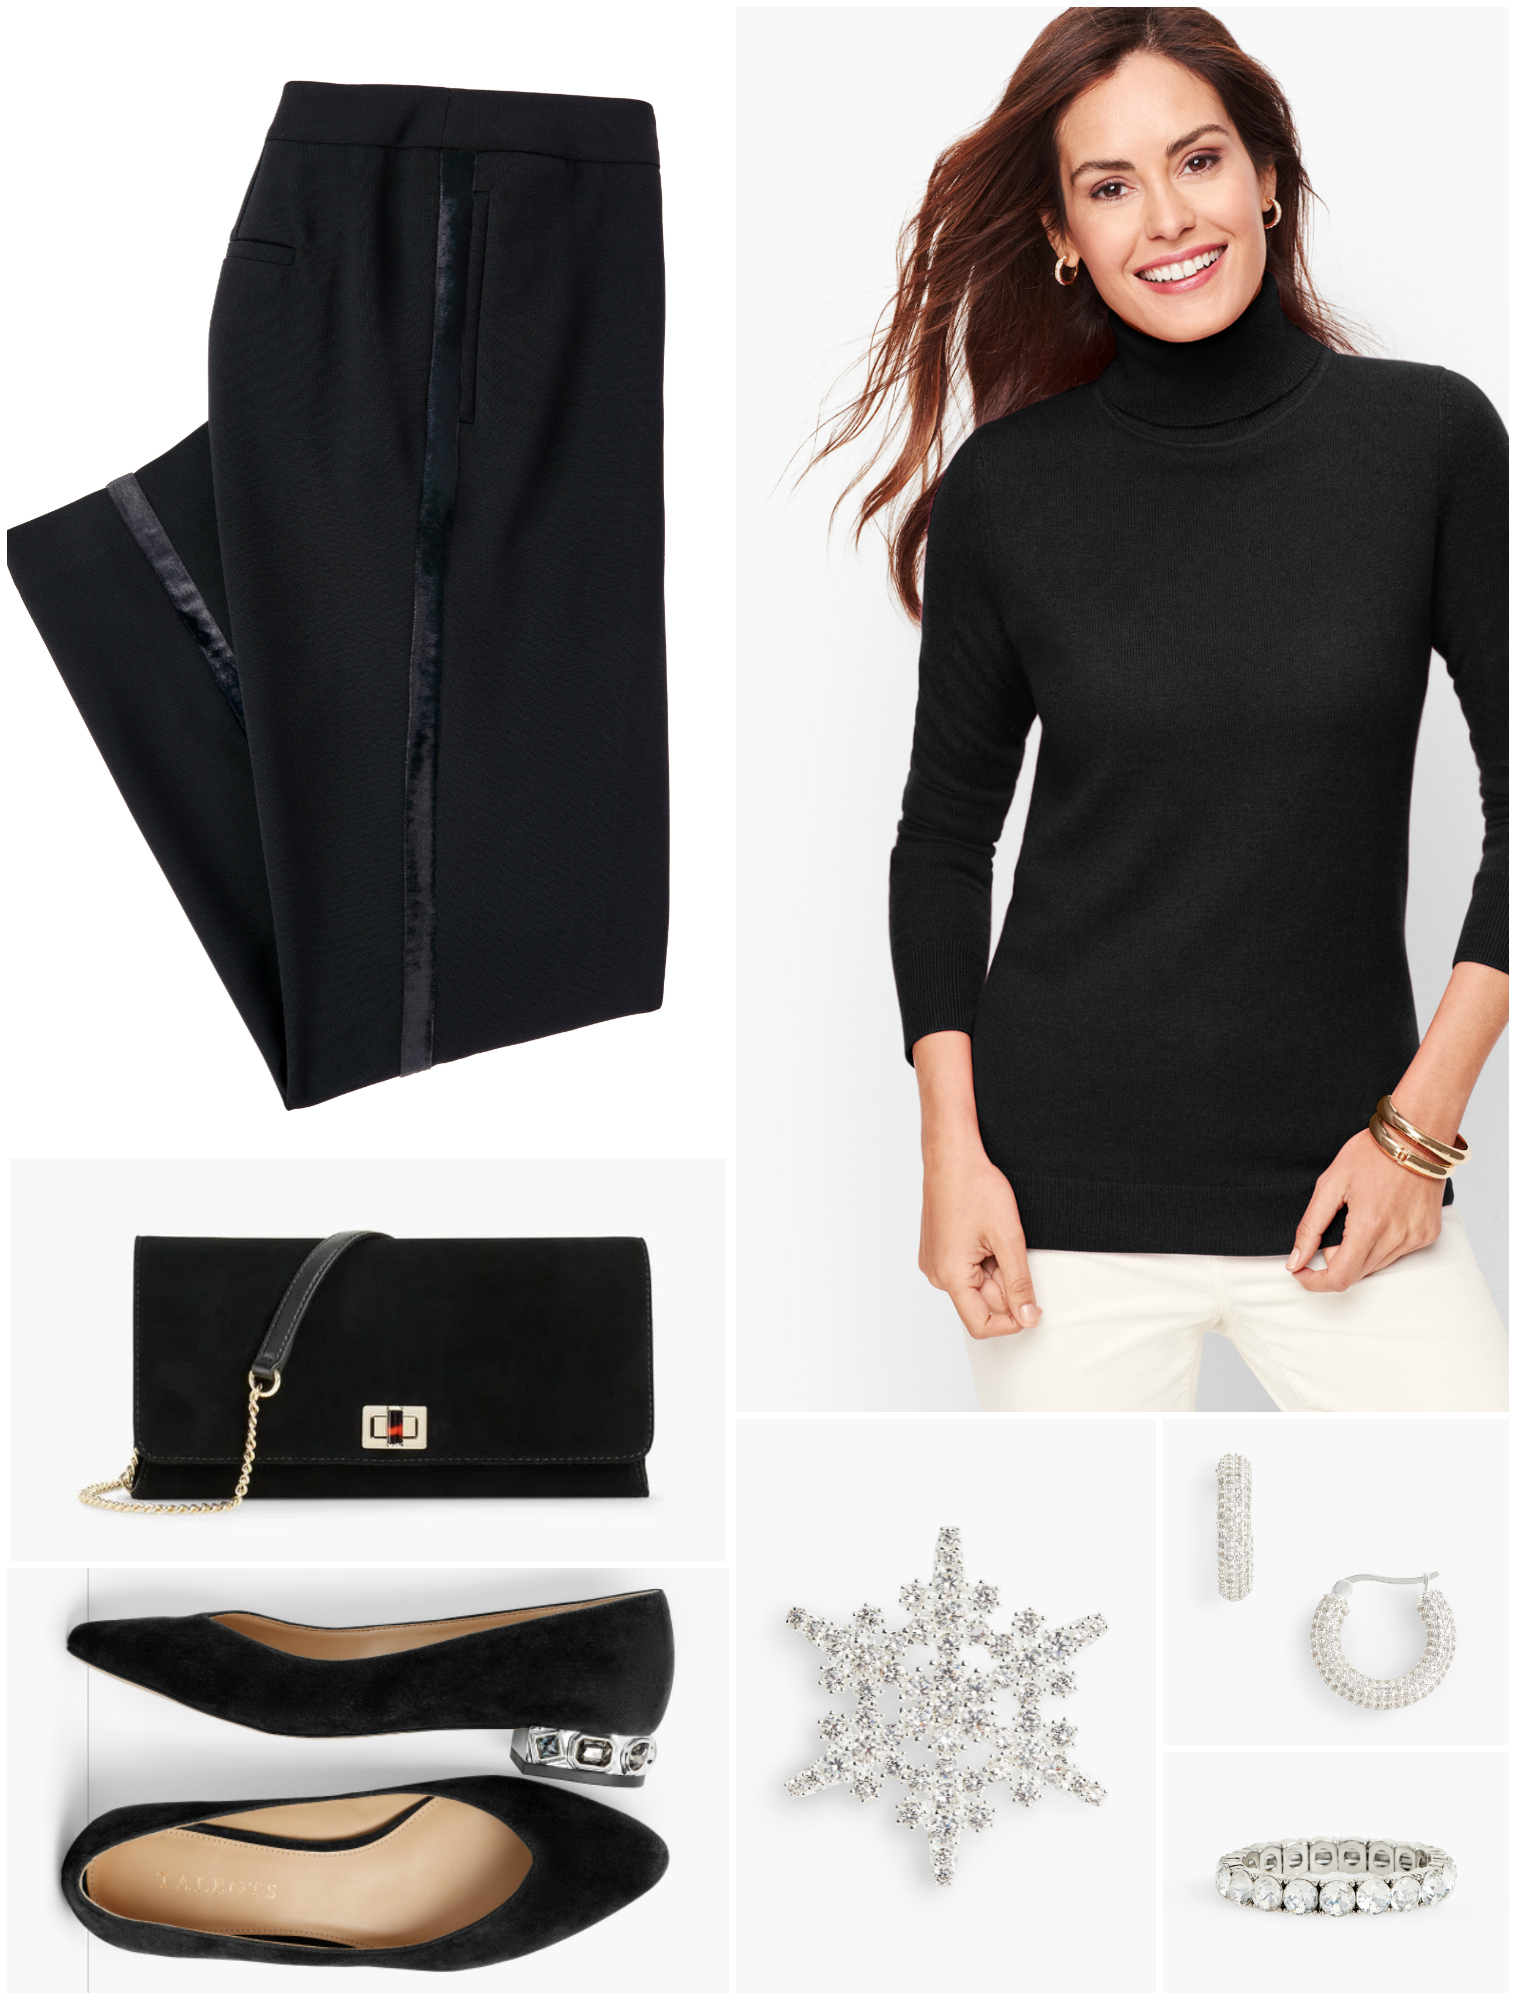 The same tuxedo trousers, now perfect for a more casual party when paired with embellished flats and a cashmere turtleneck. It's a luxe Audrey Hepburn-inspired look.